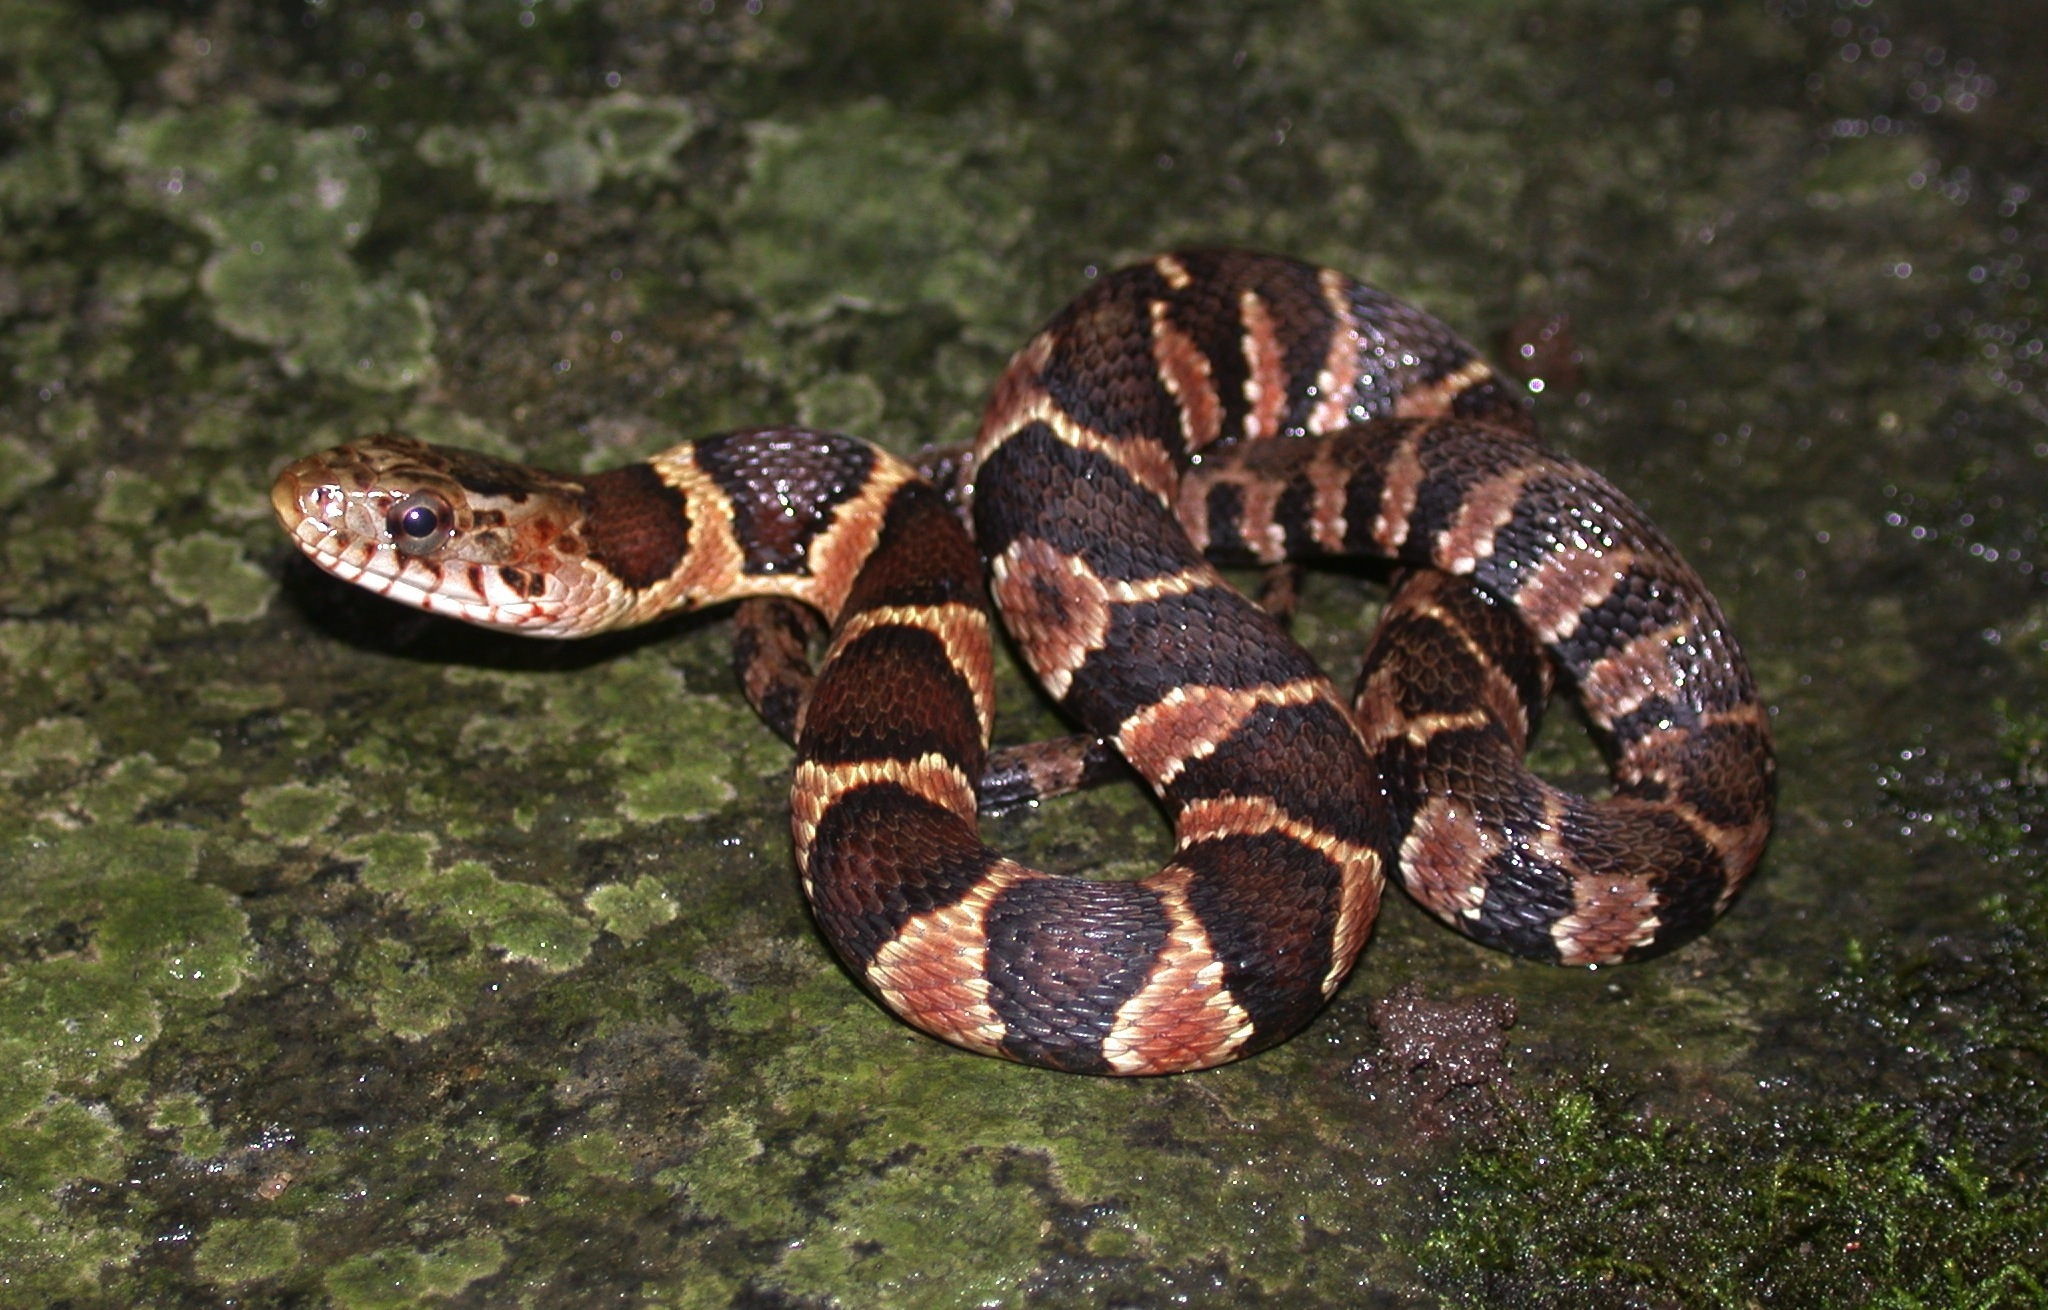 Juvenile northern watersnake with bold markings Photo by JD Willson